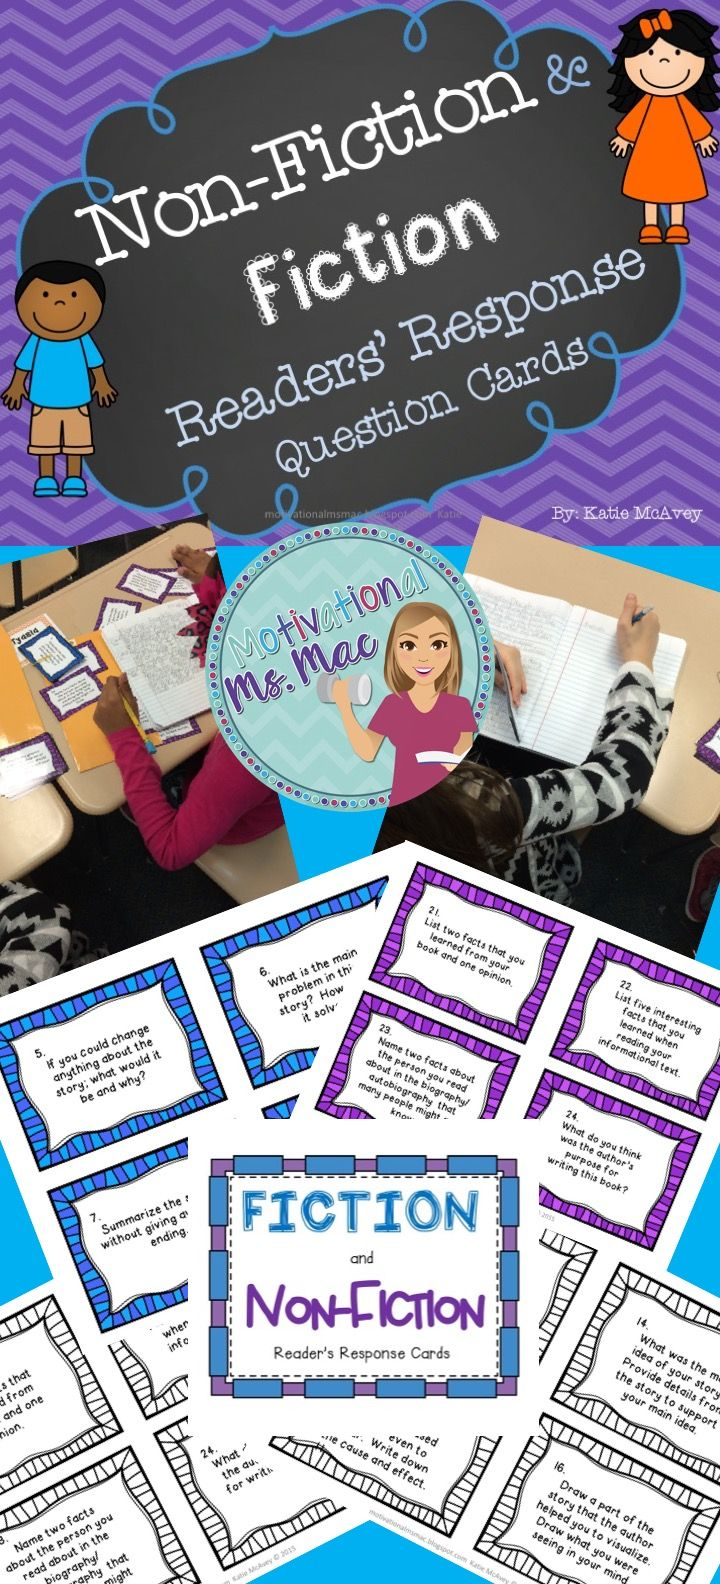 Reader's Response Cards for Fiction (blue cards) and Non-Fictional Texts (purple cards)